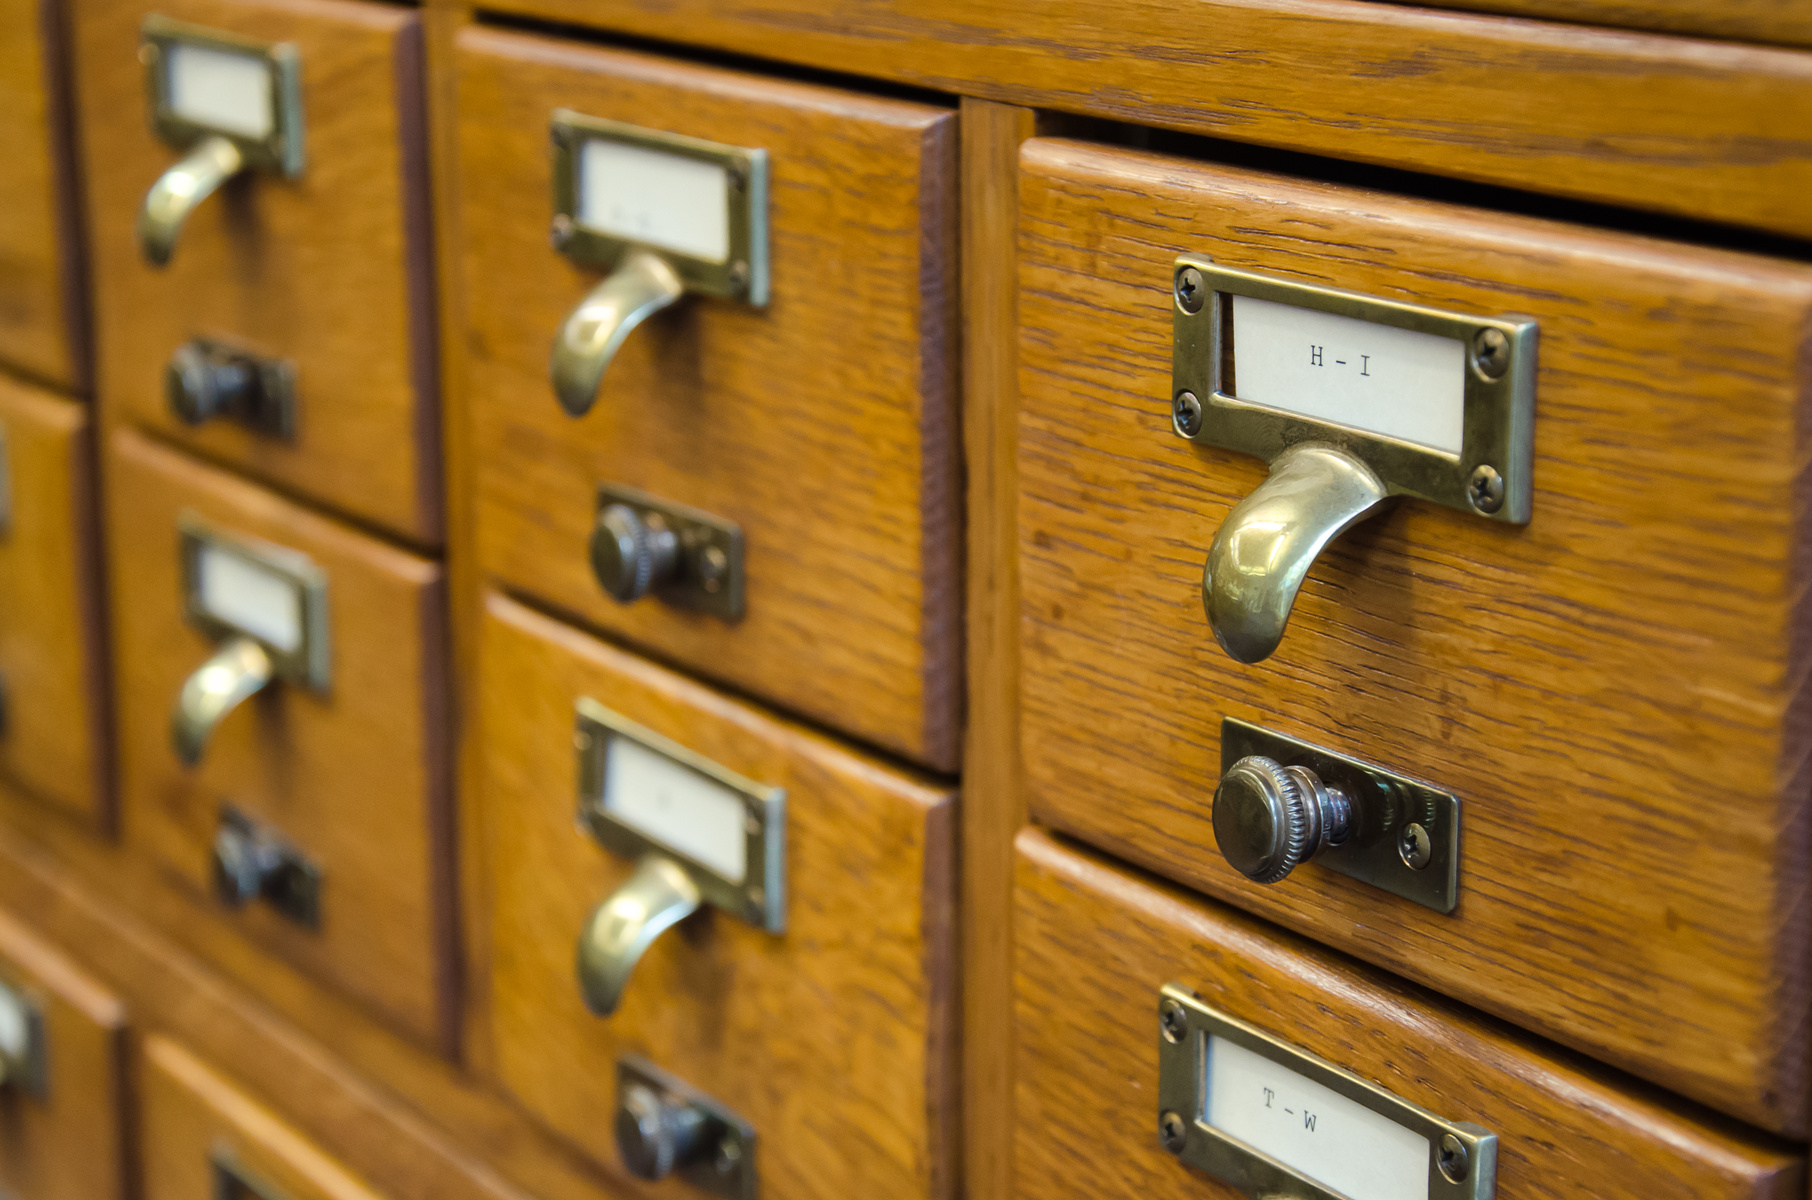 Closeup of library card catalog drawers